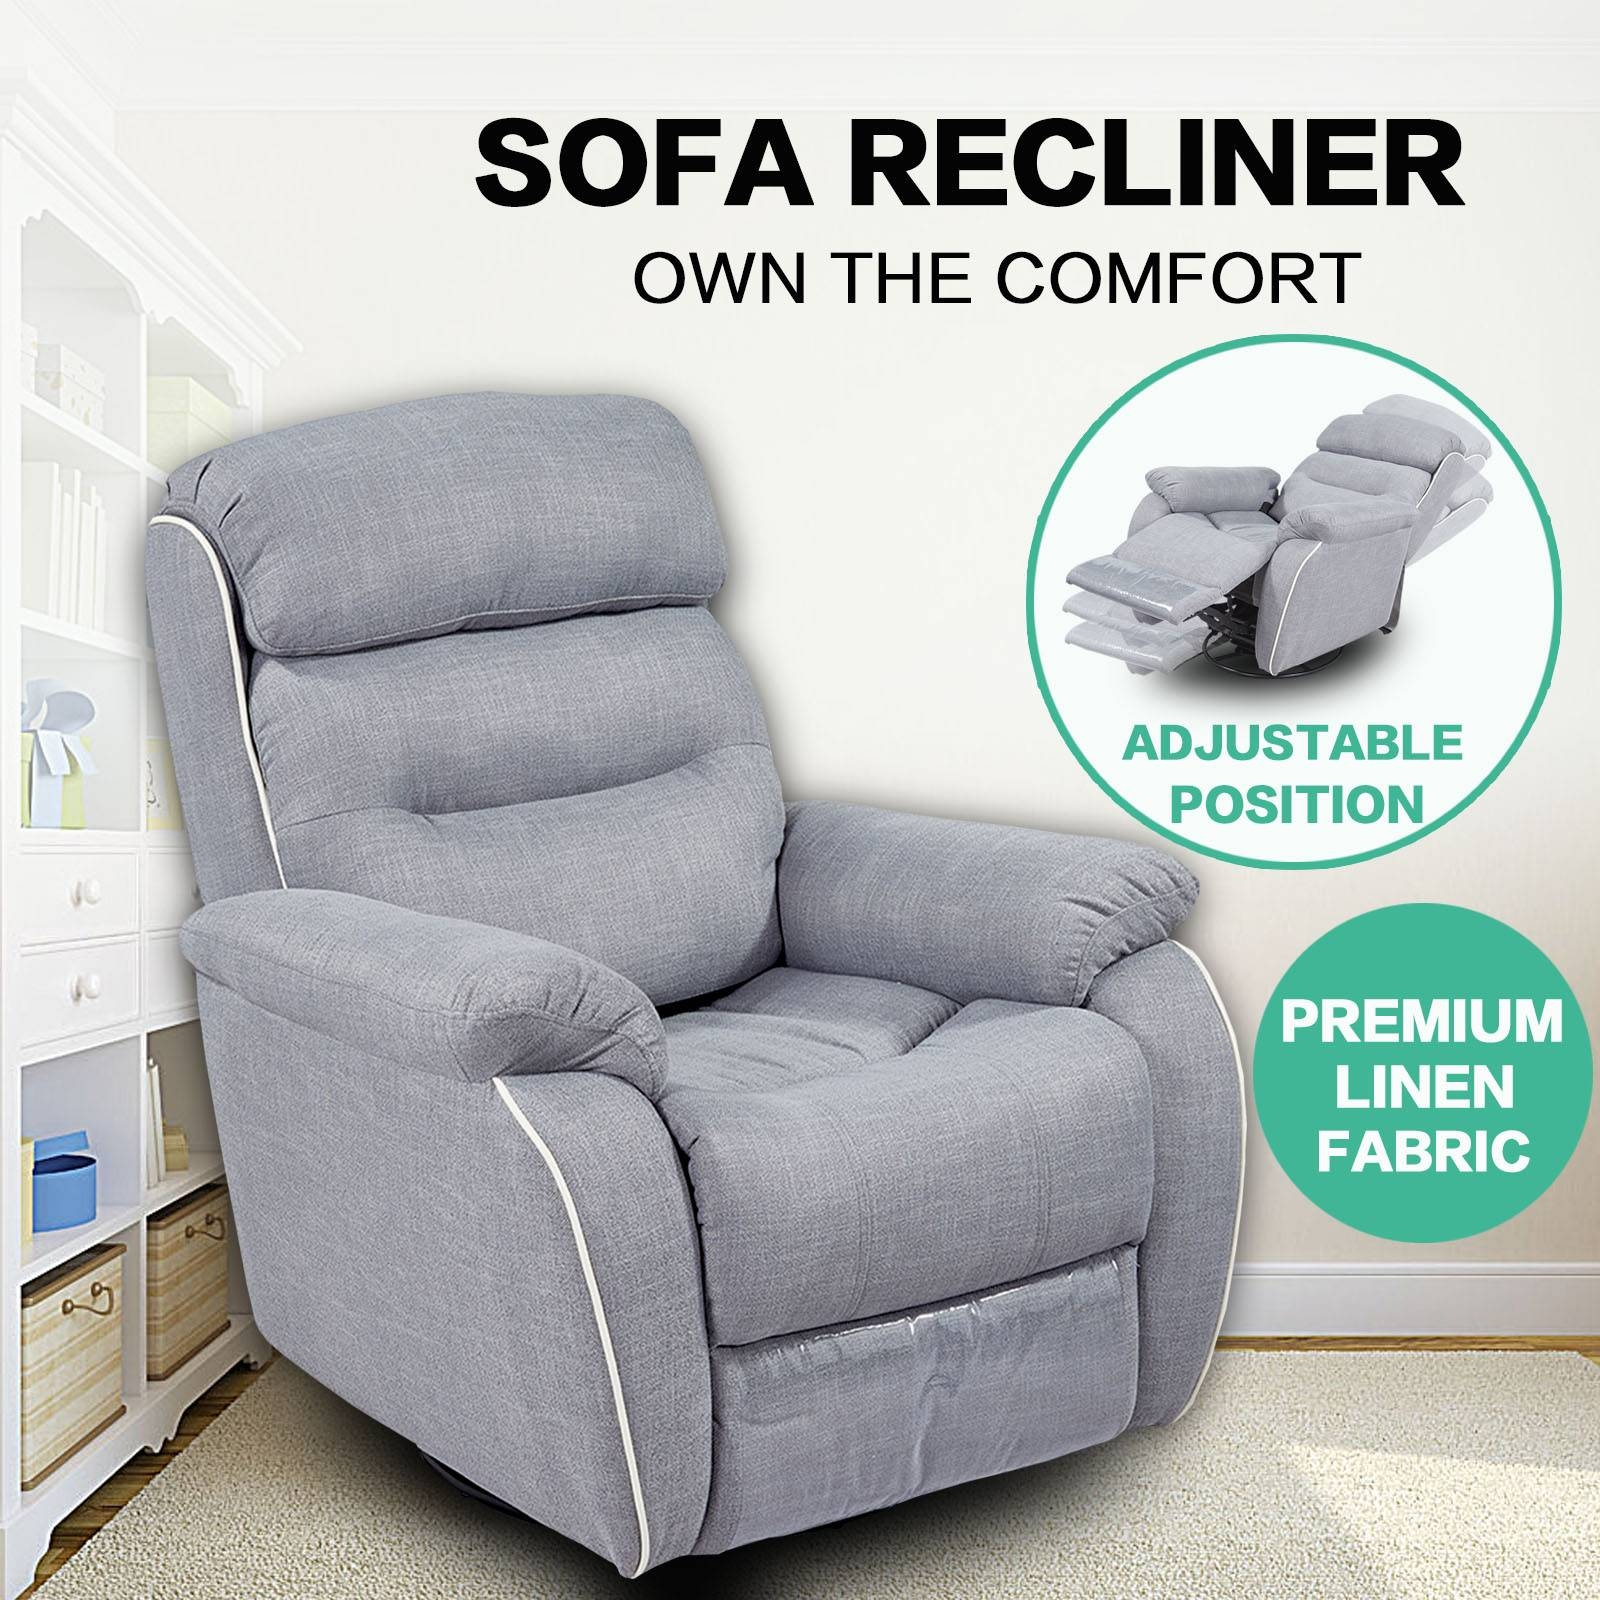 Ergonomic Sofa with regard to Ergonomic Sofas And Chairs (Image 13 of 30)